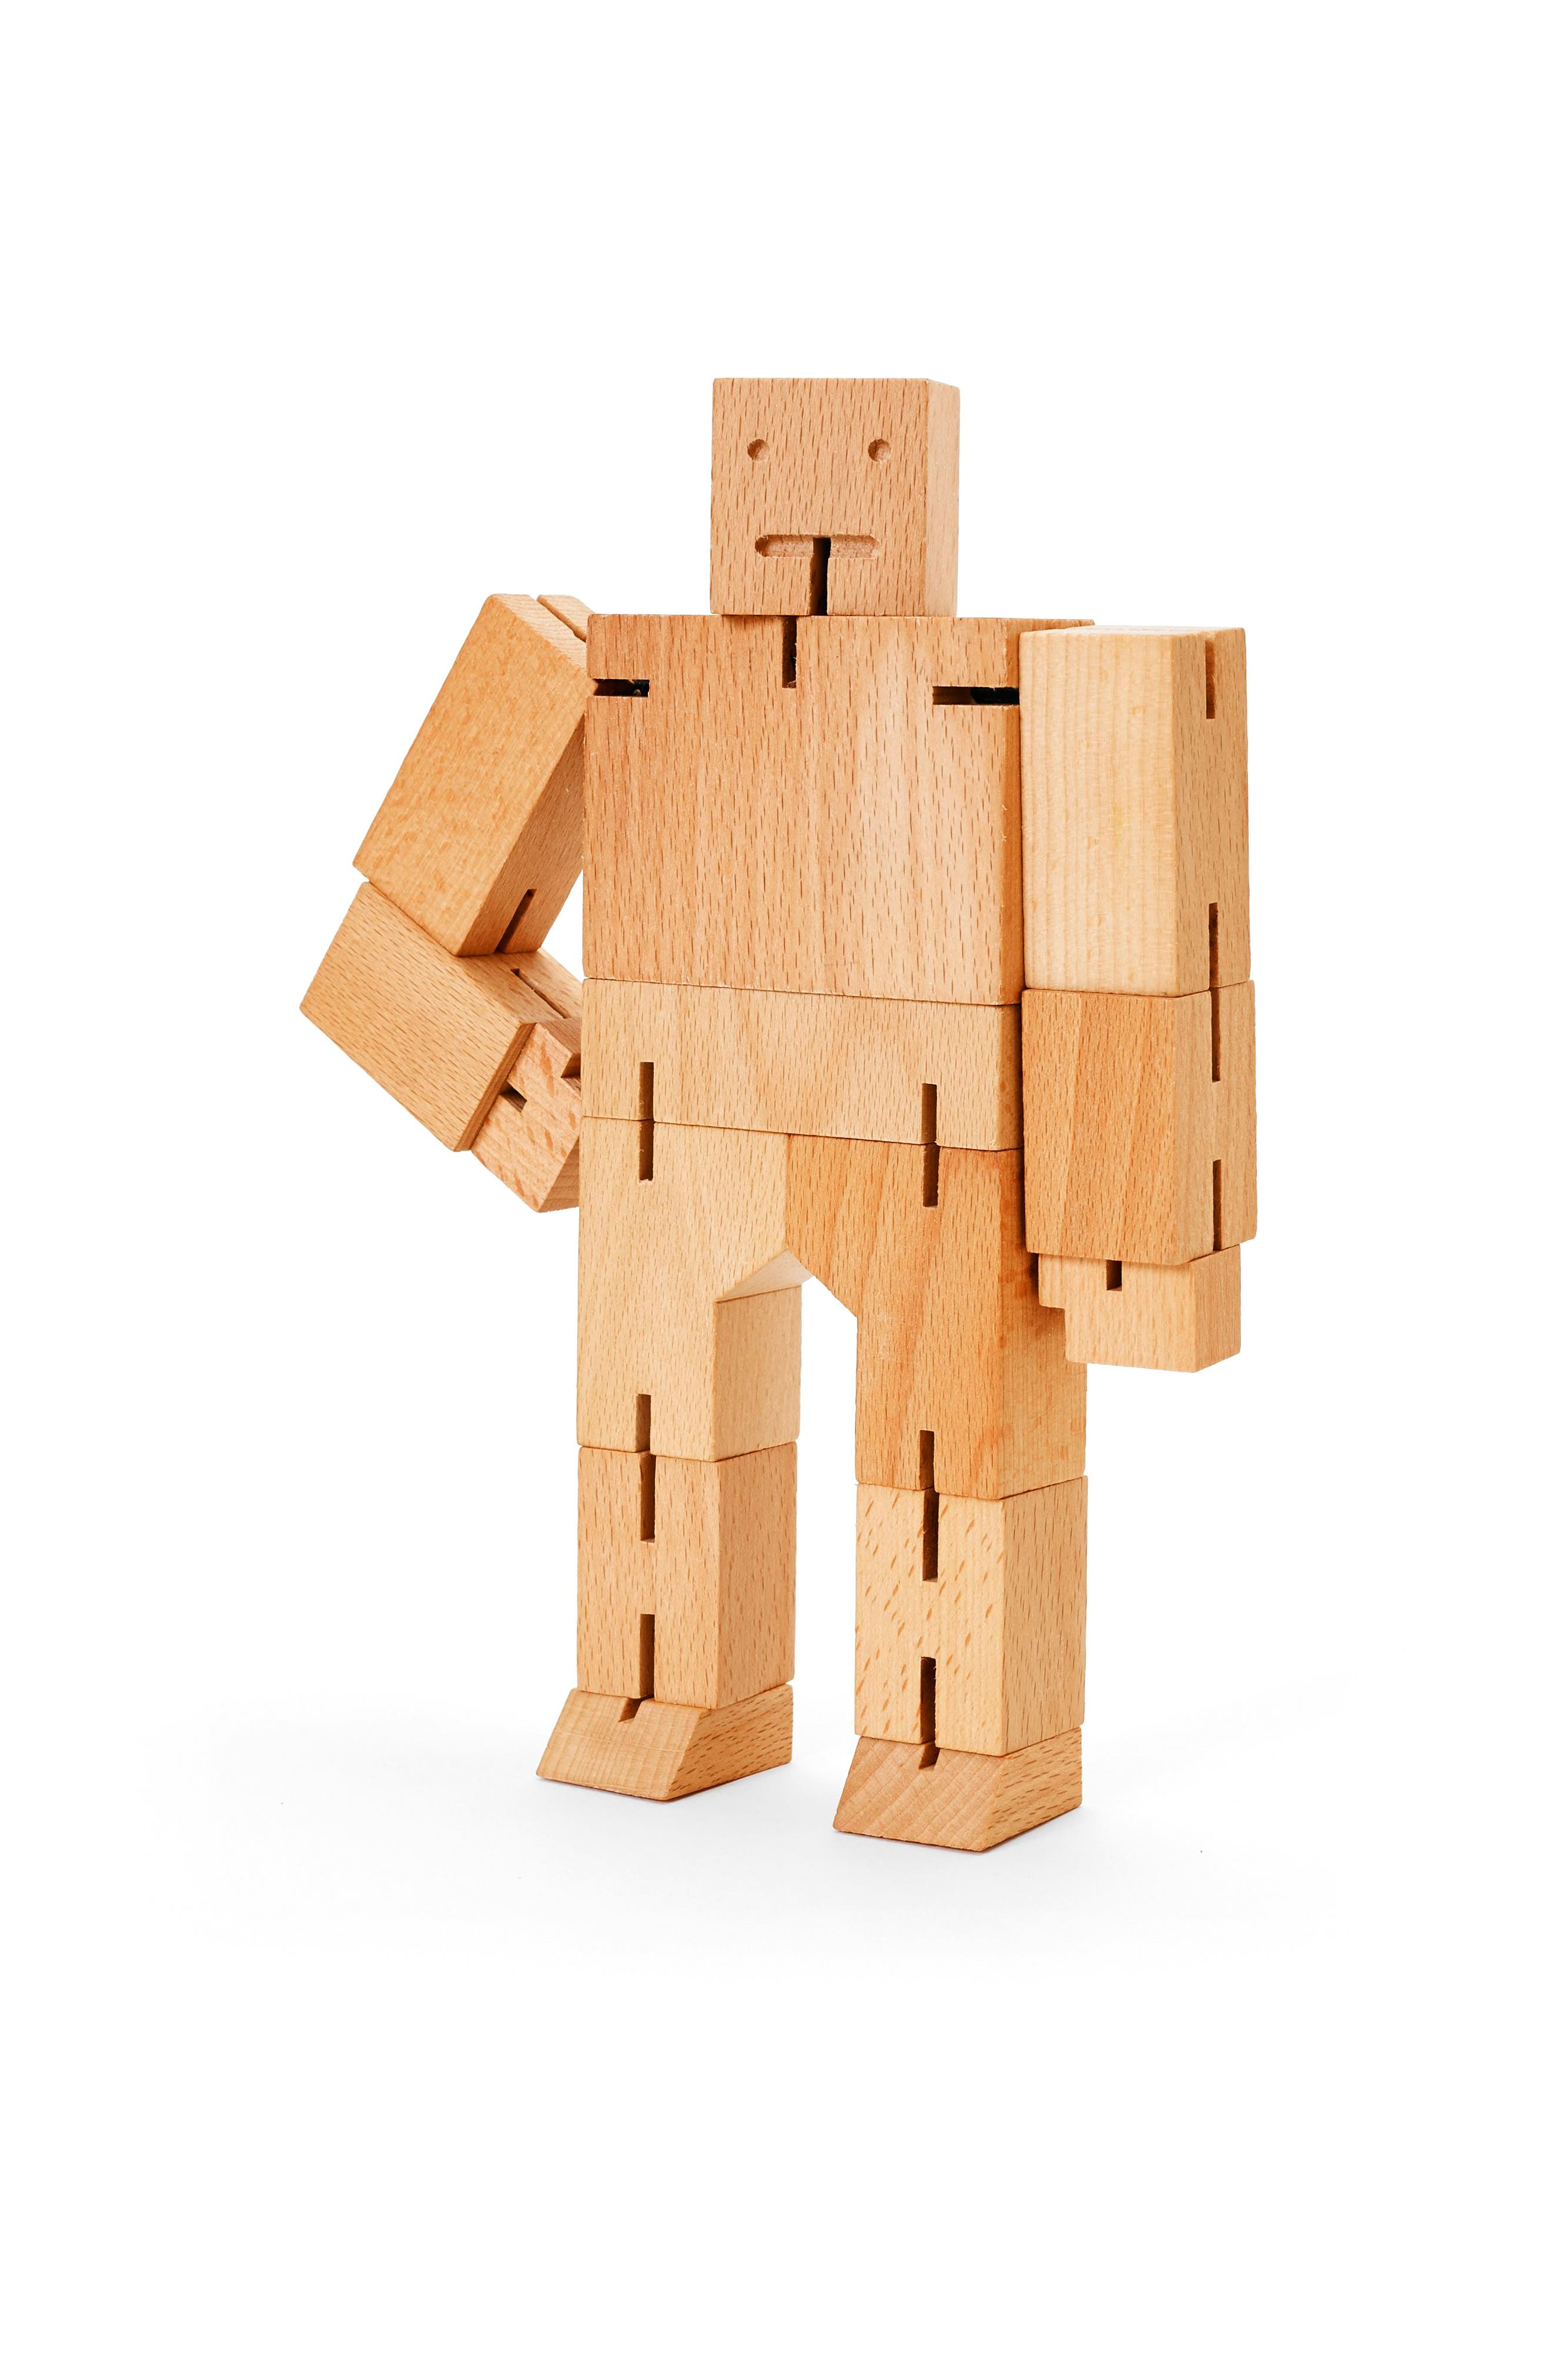 Areaware Cubebot Small Wooden Robot Toy